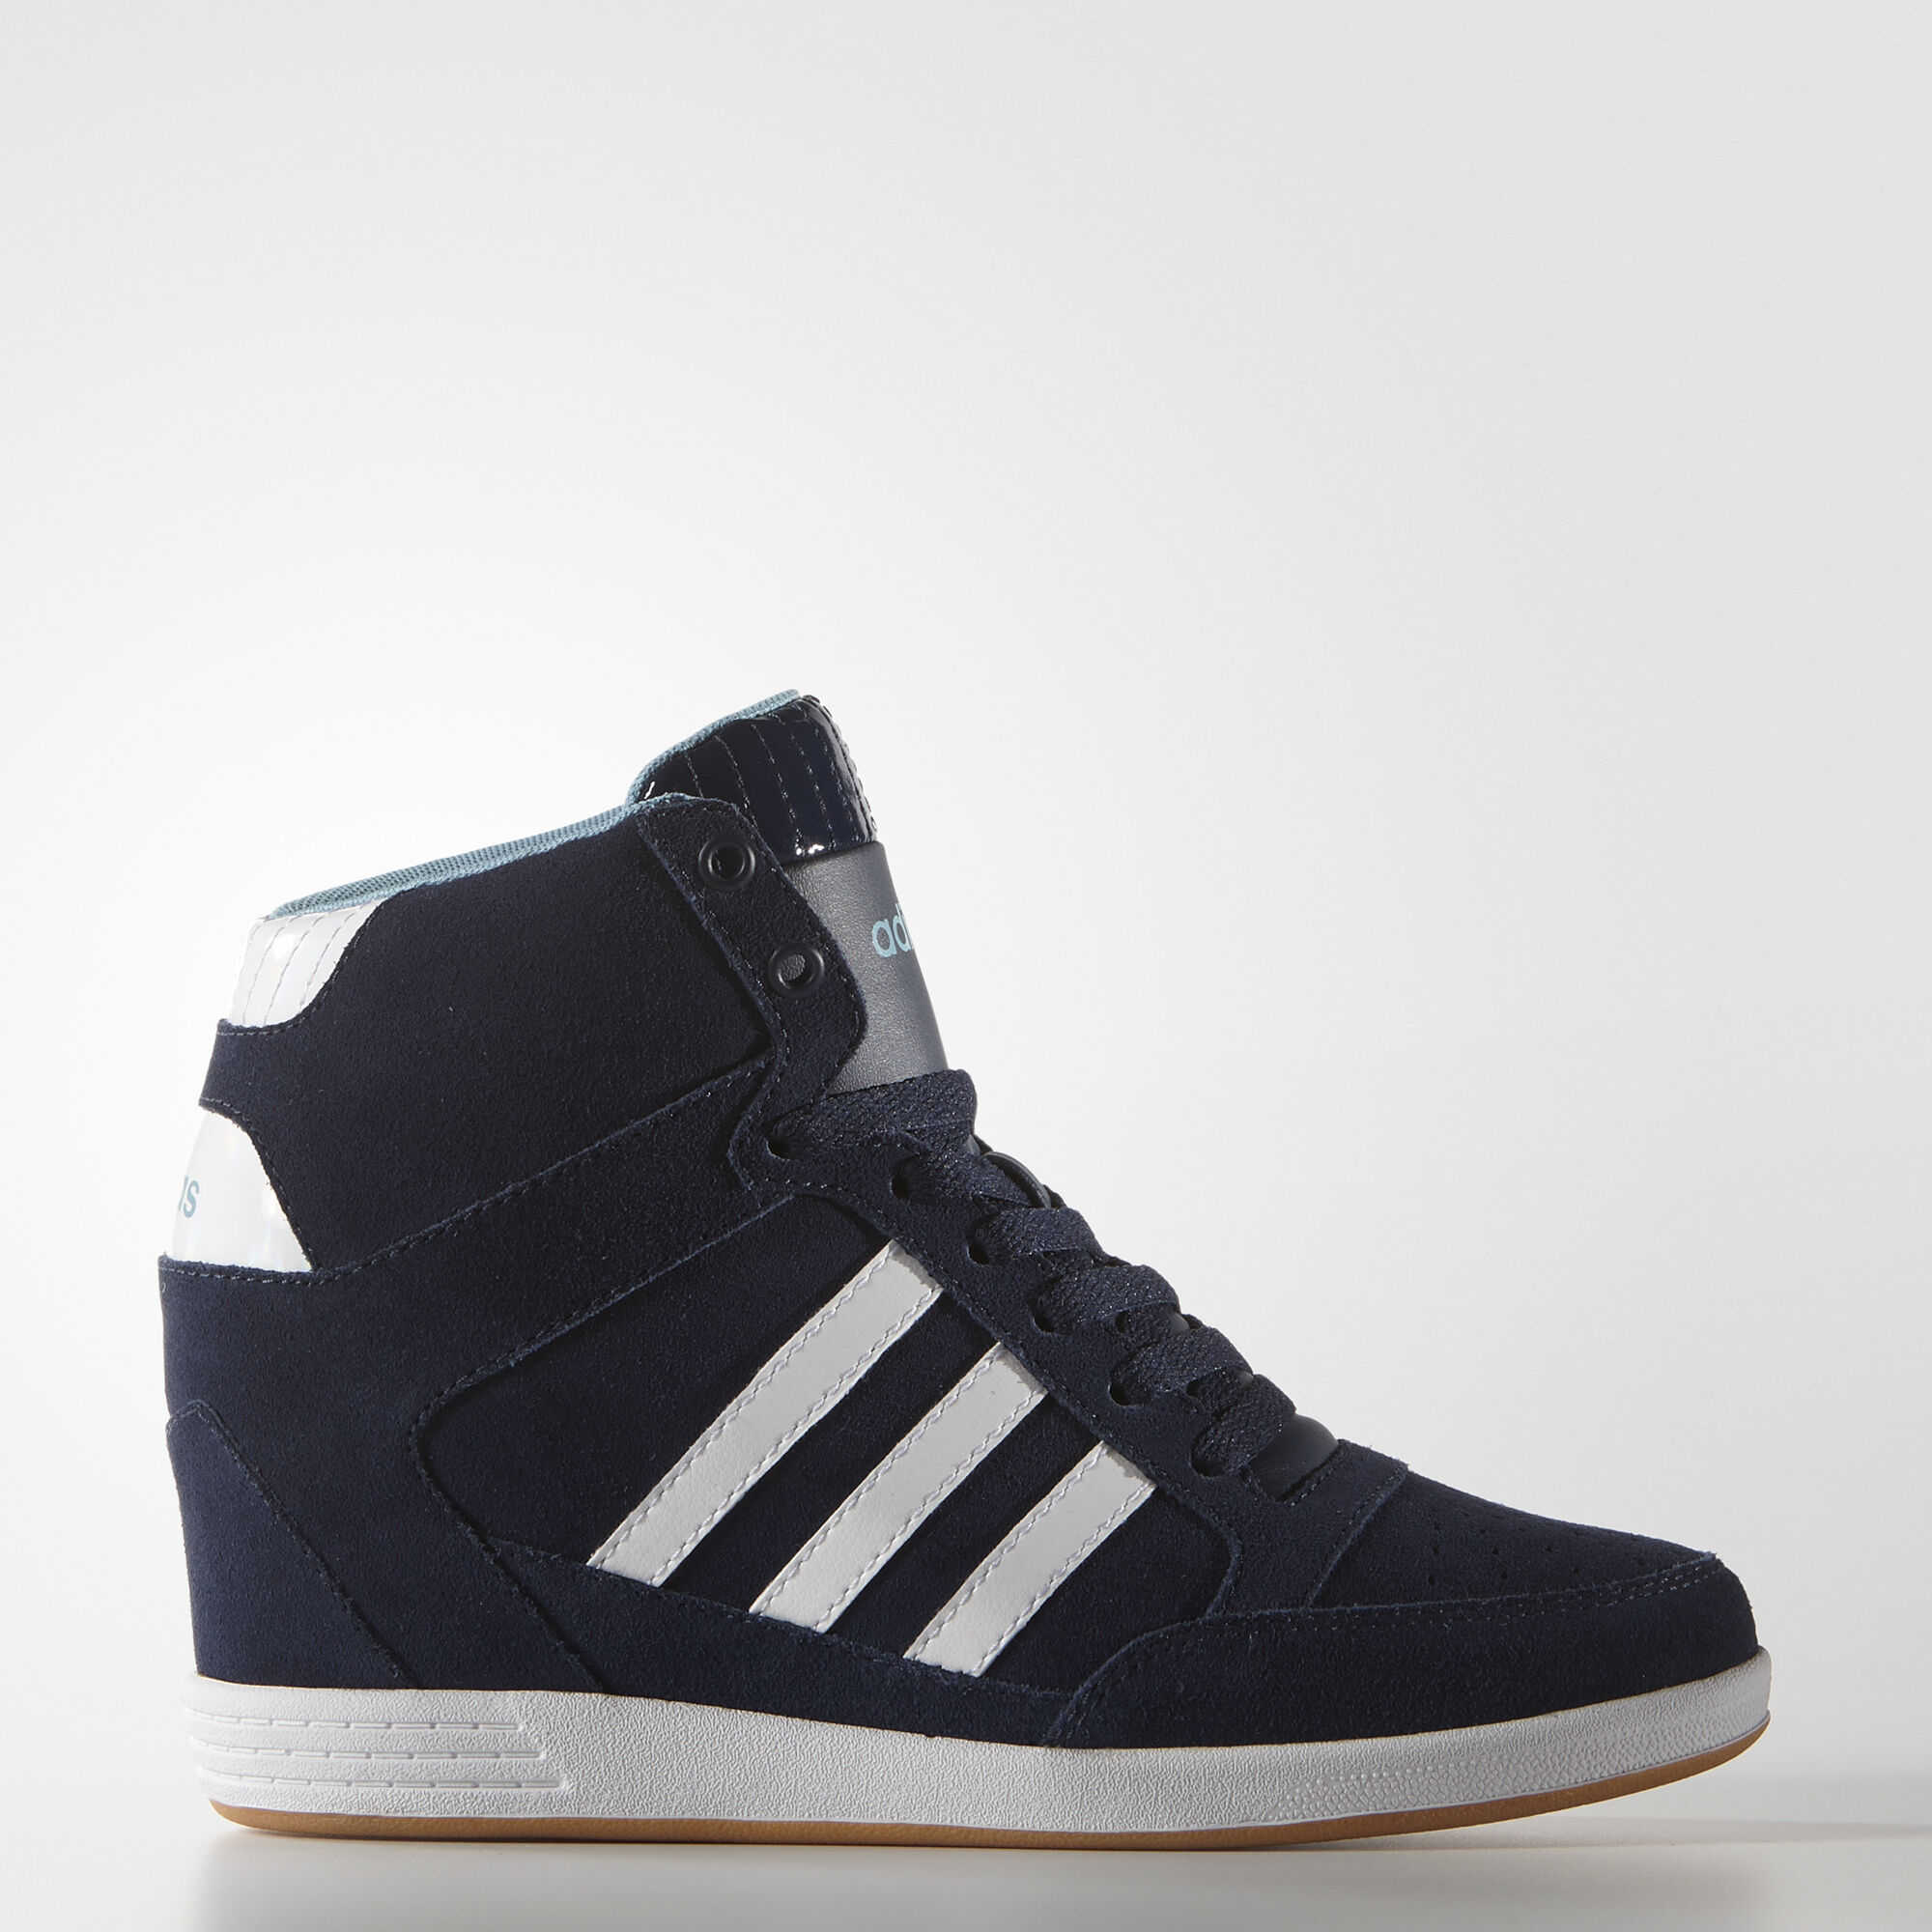 Shop for and buy womens wedge sneakers online at Macy's. Find womens wedge sneakers at Macy's.